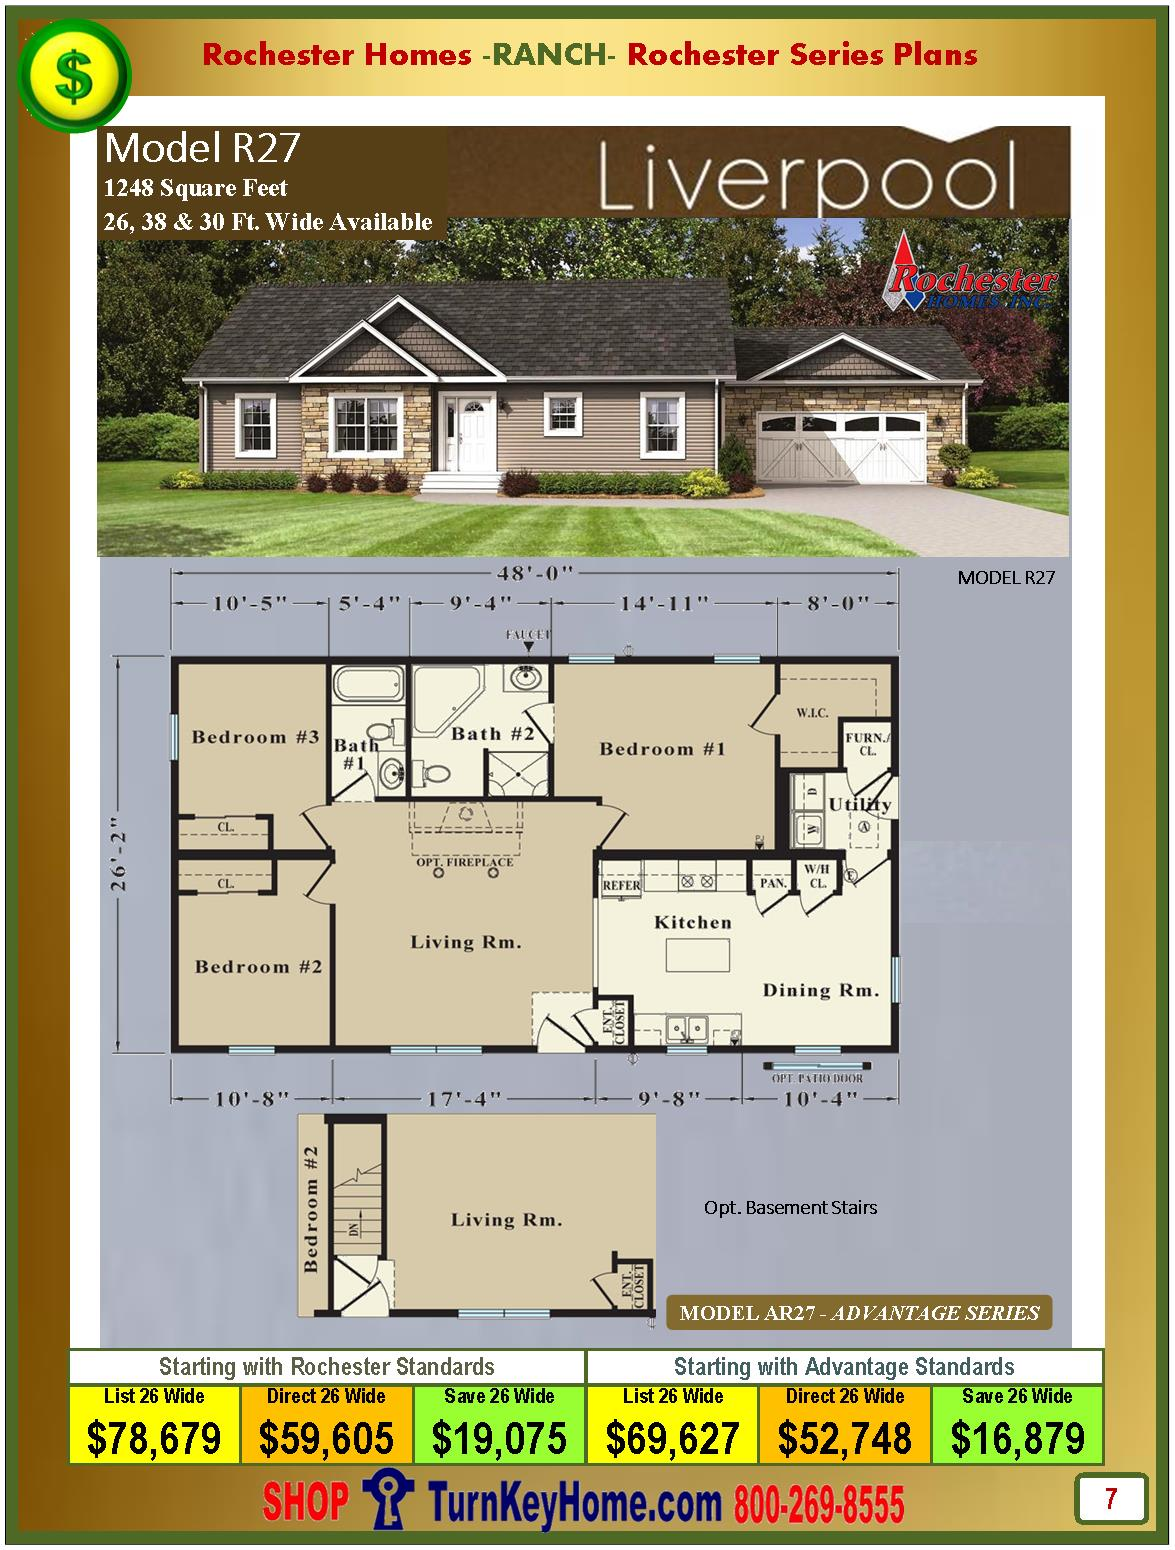 Modular.Homes.Rochester.Home.Inc.Liverpool.R27.Ranch.Plan.Price.Catalog.P7.1215